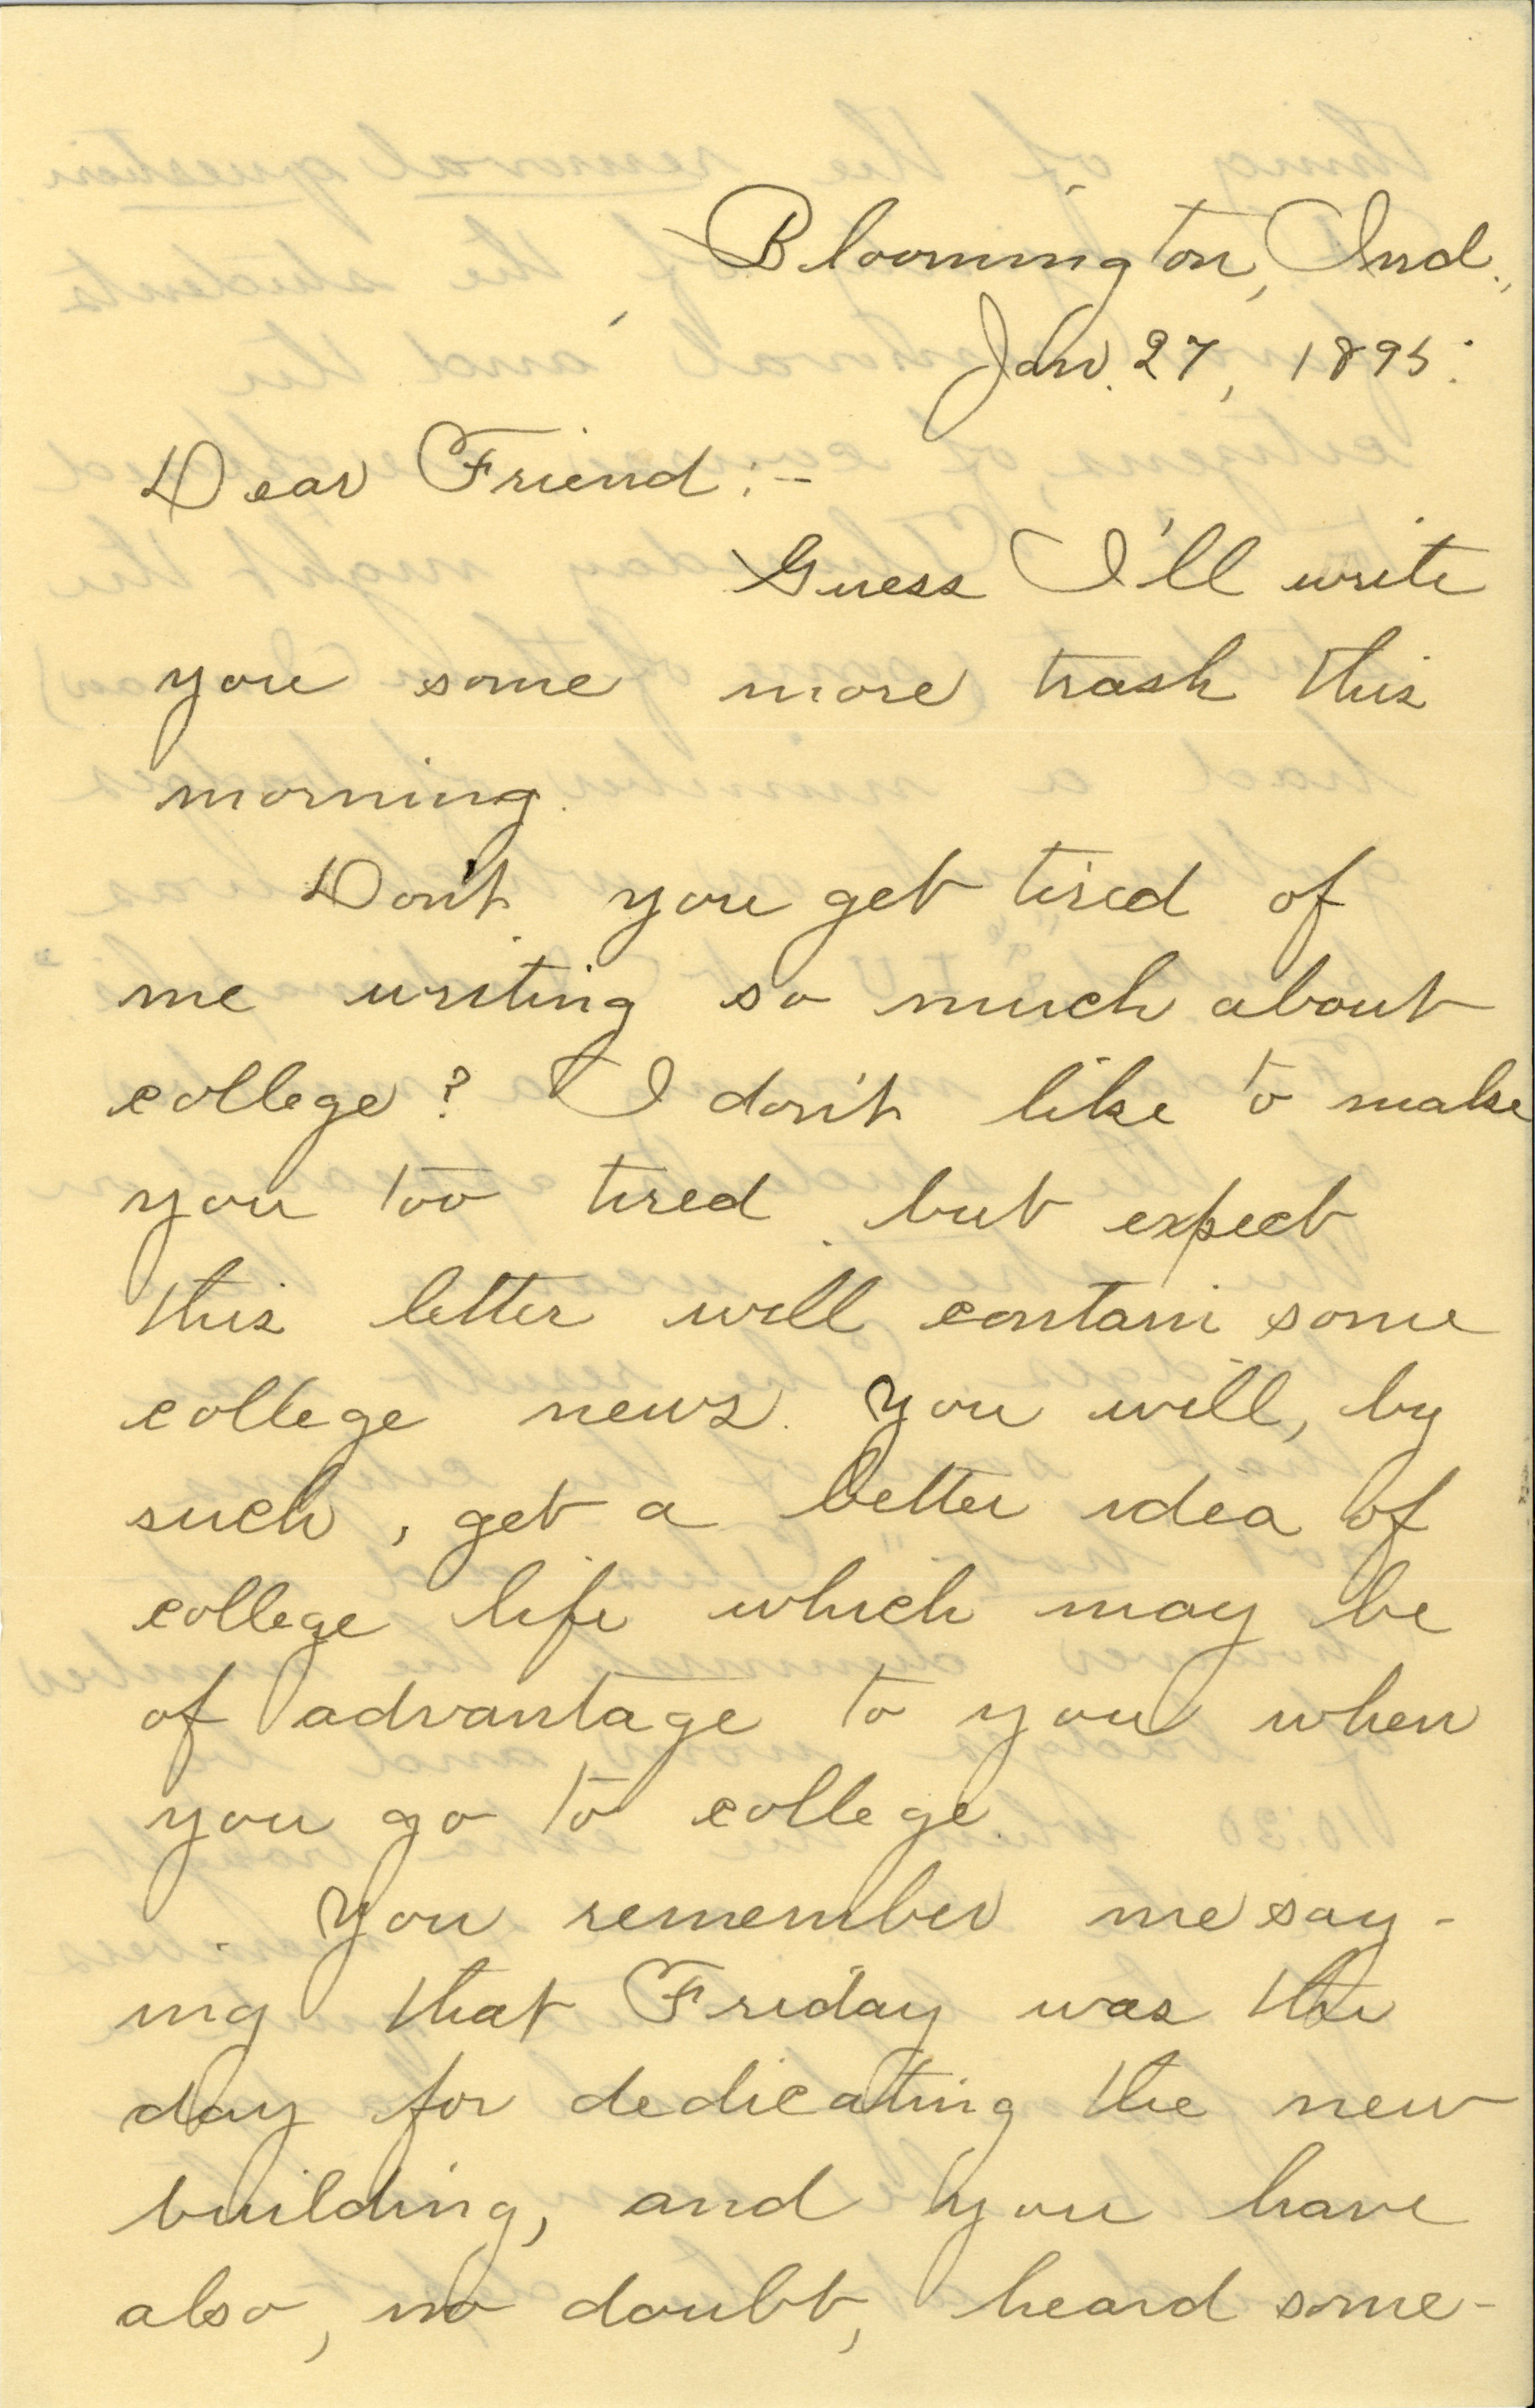 This is a scan of a letter from January 27, 1895 in cursive handwriting.